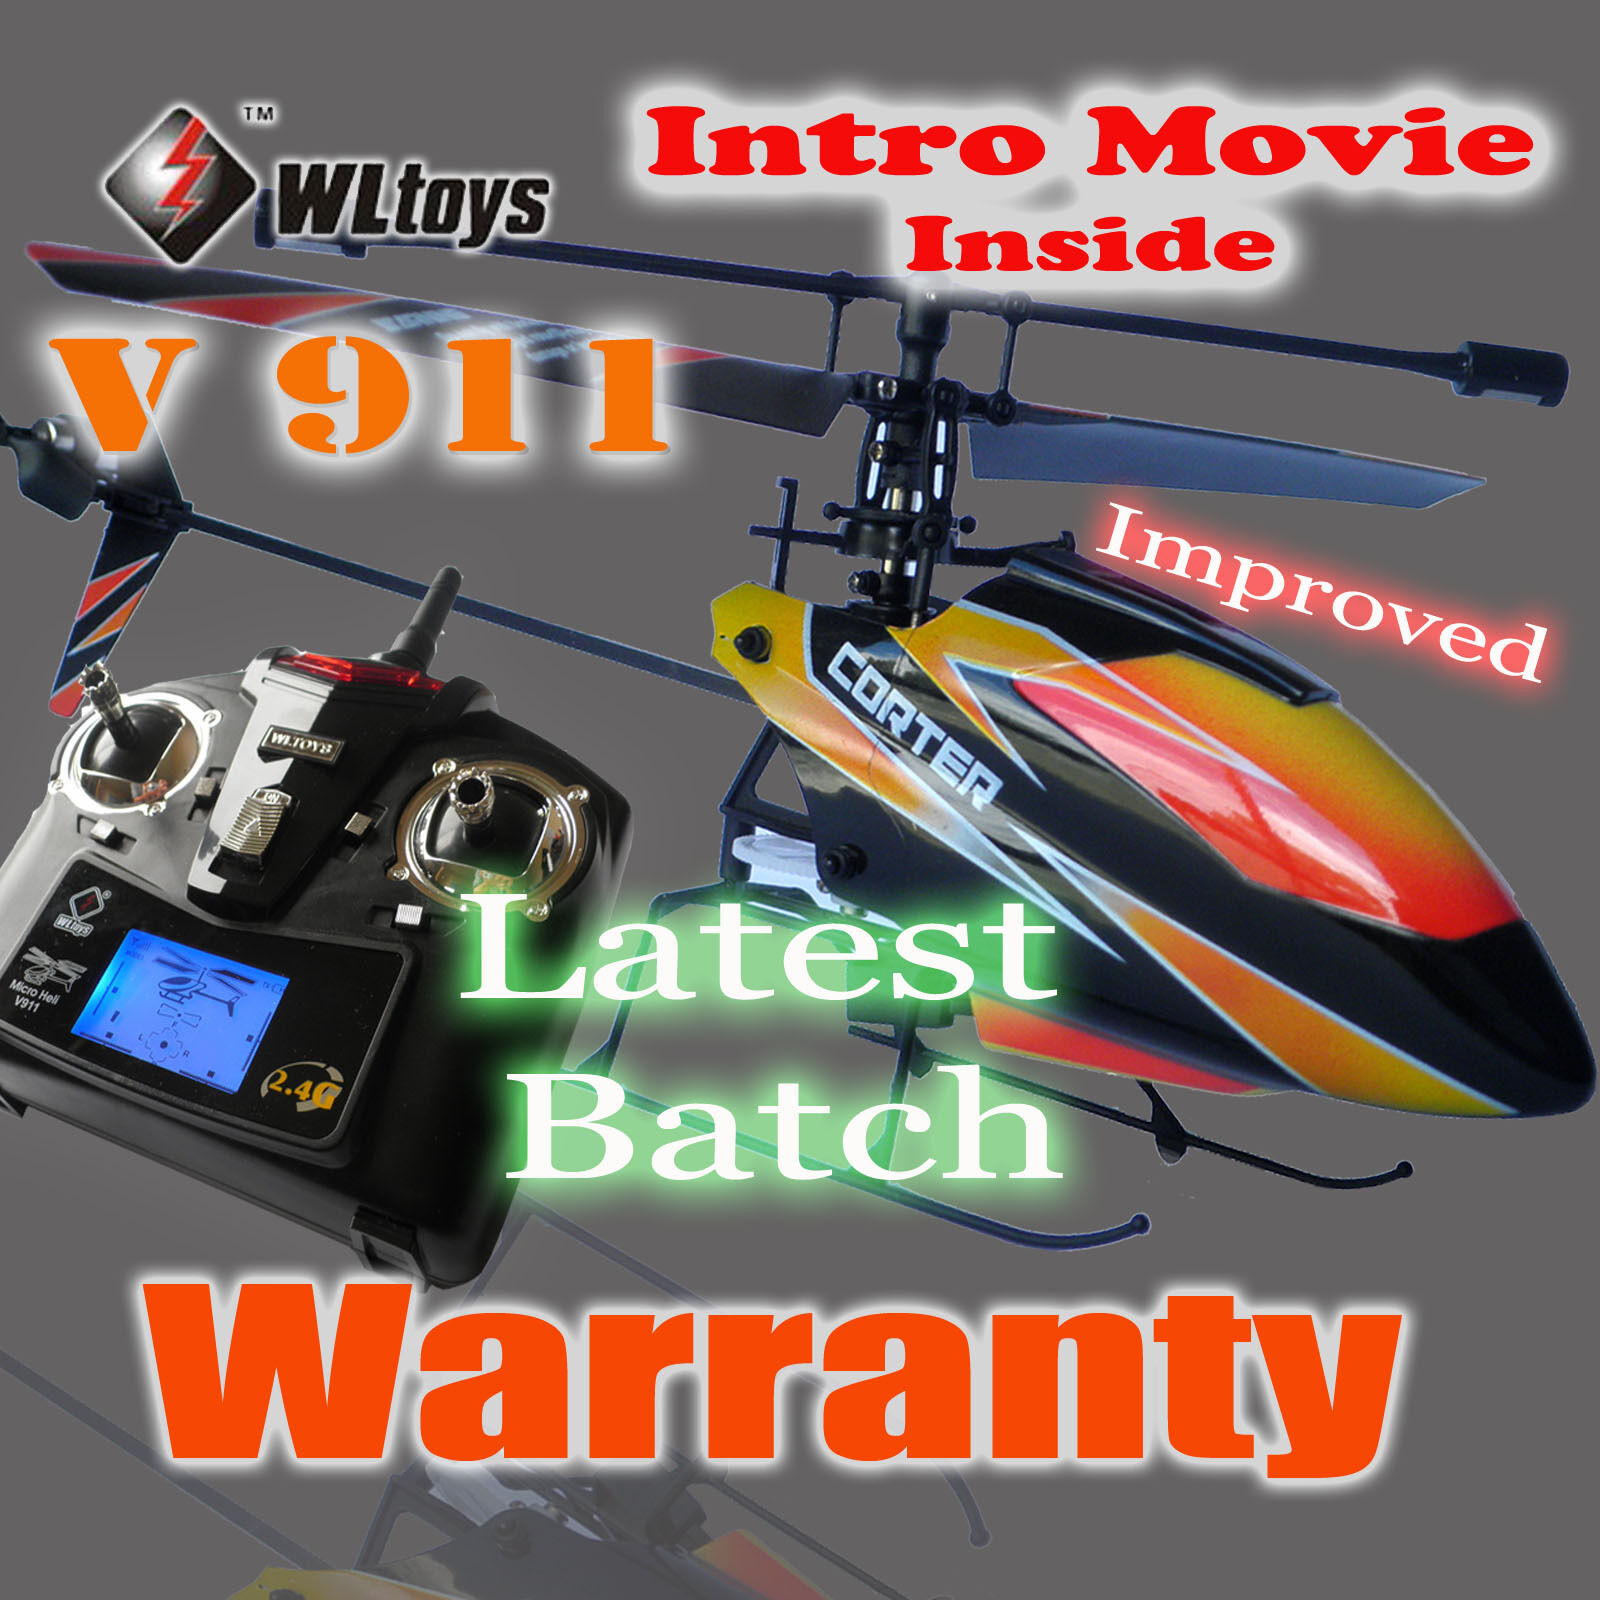 4 Battries V911 RC Helicopter 4ch Single blade Single Rotor Gyro In/ Outdoor